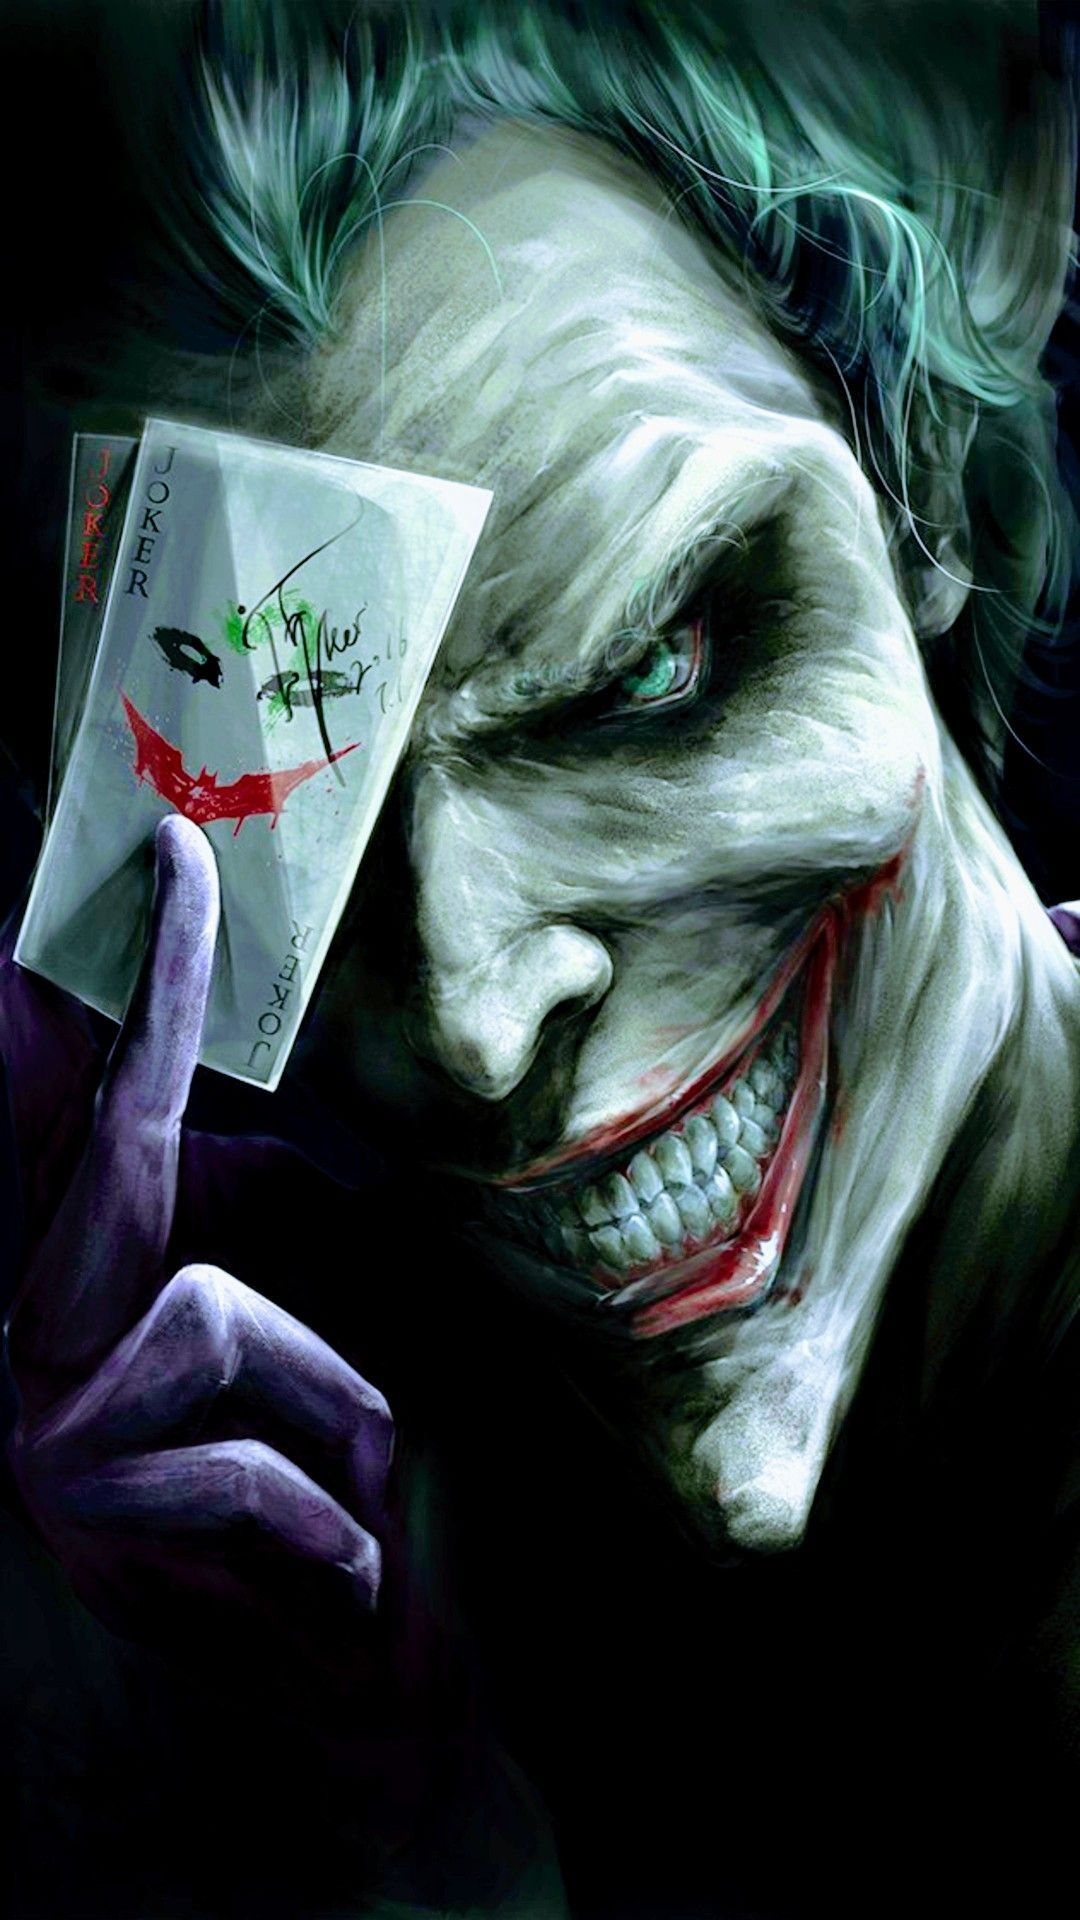 Pin by Jerry Williamson II on funny in 2020 Joker card